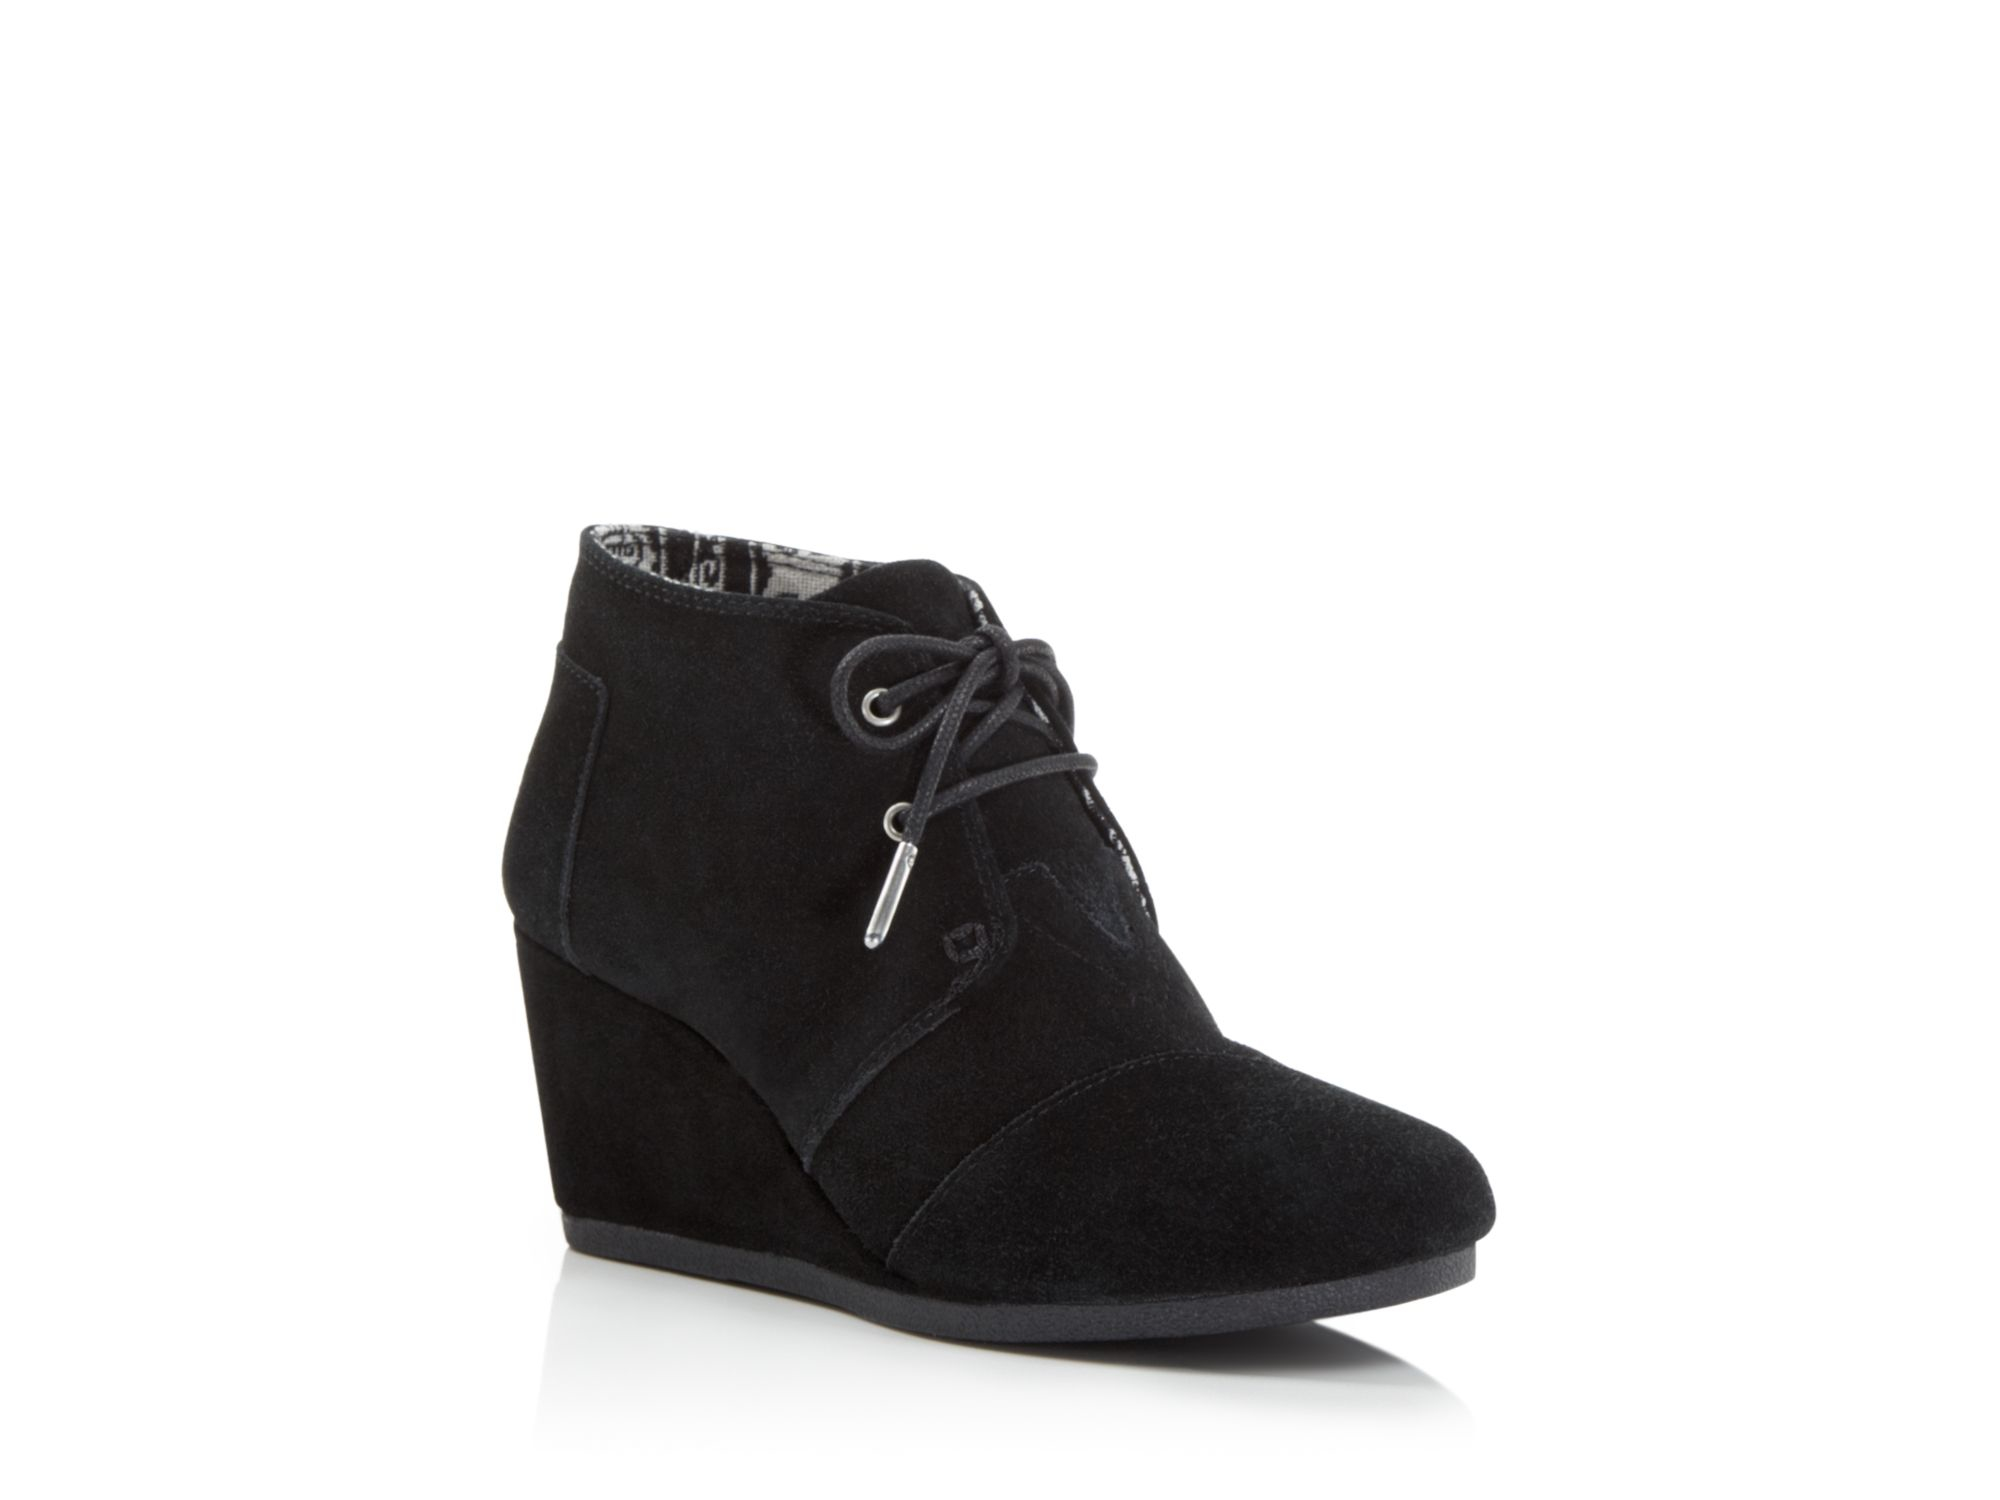 Buy low price, high quality black wedge booties suede with worldwide shipping on imaginary-7mbh1j.cf